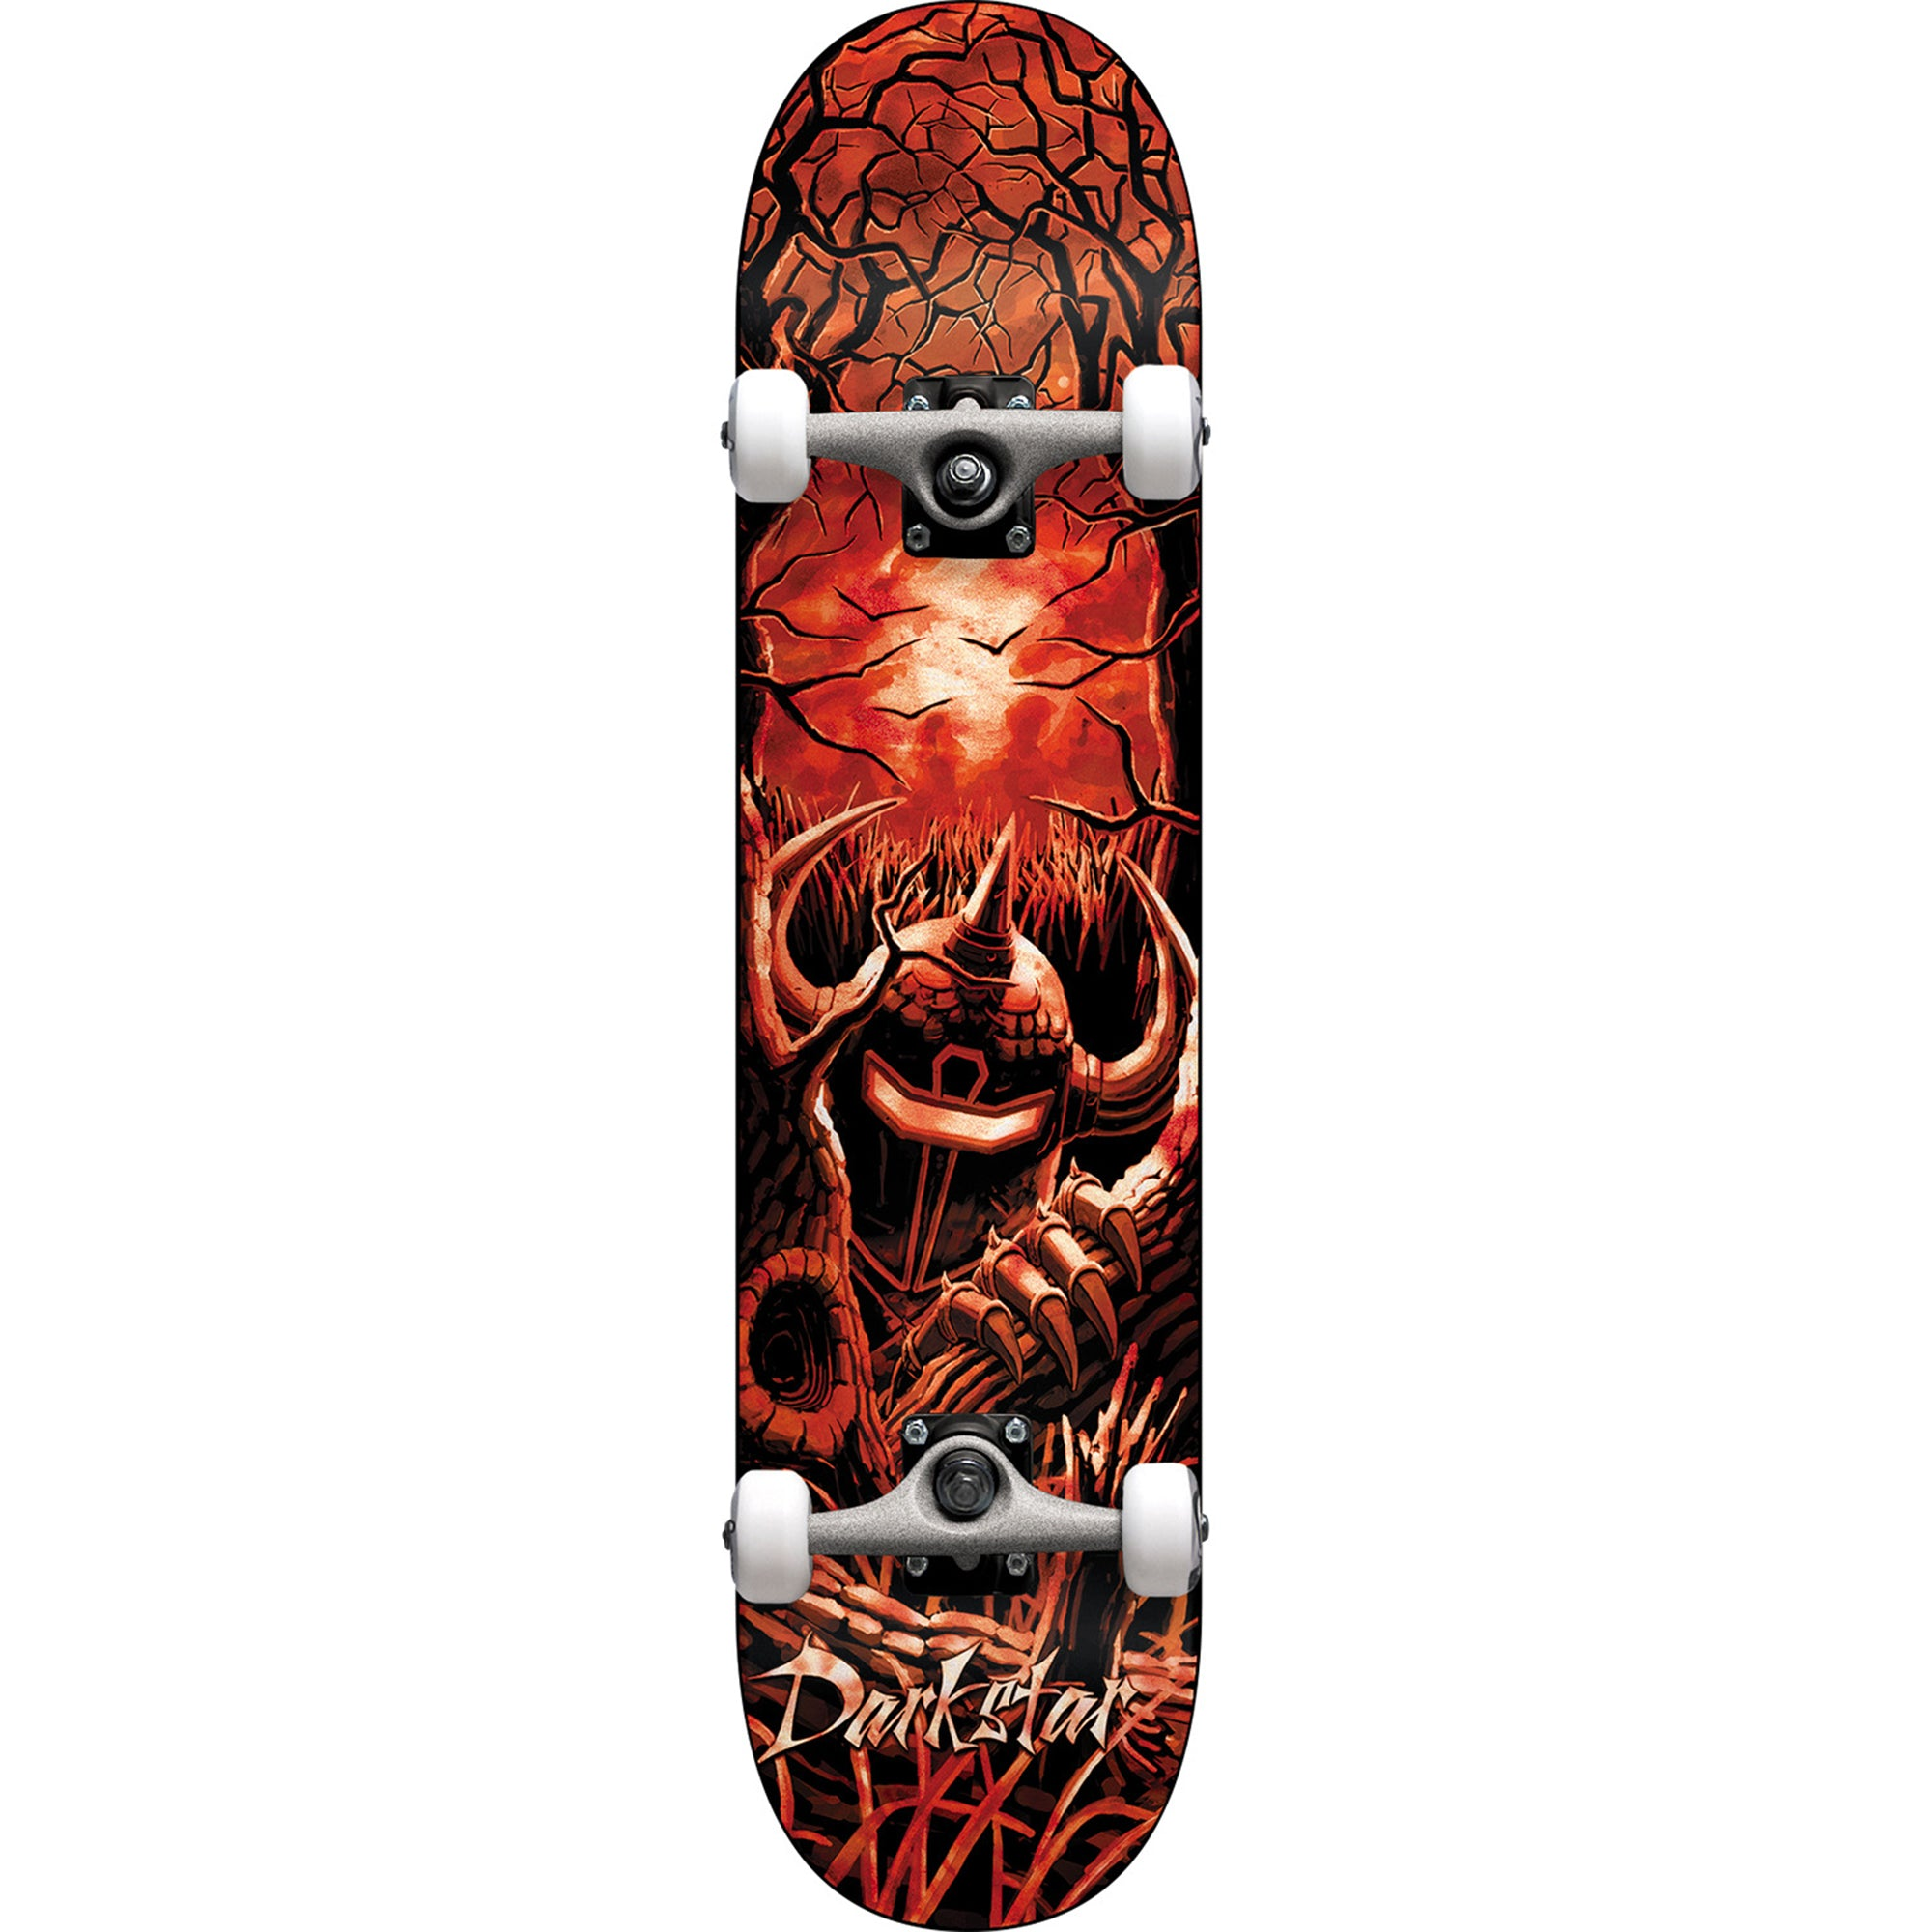 Darkstar Woods 8.12 Complete Skateboard - Red Tie Dye